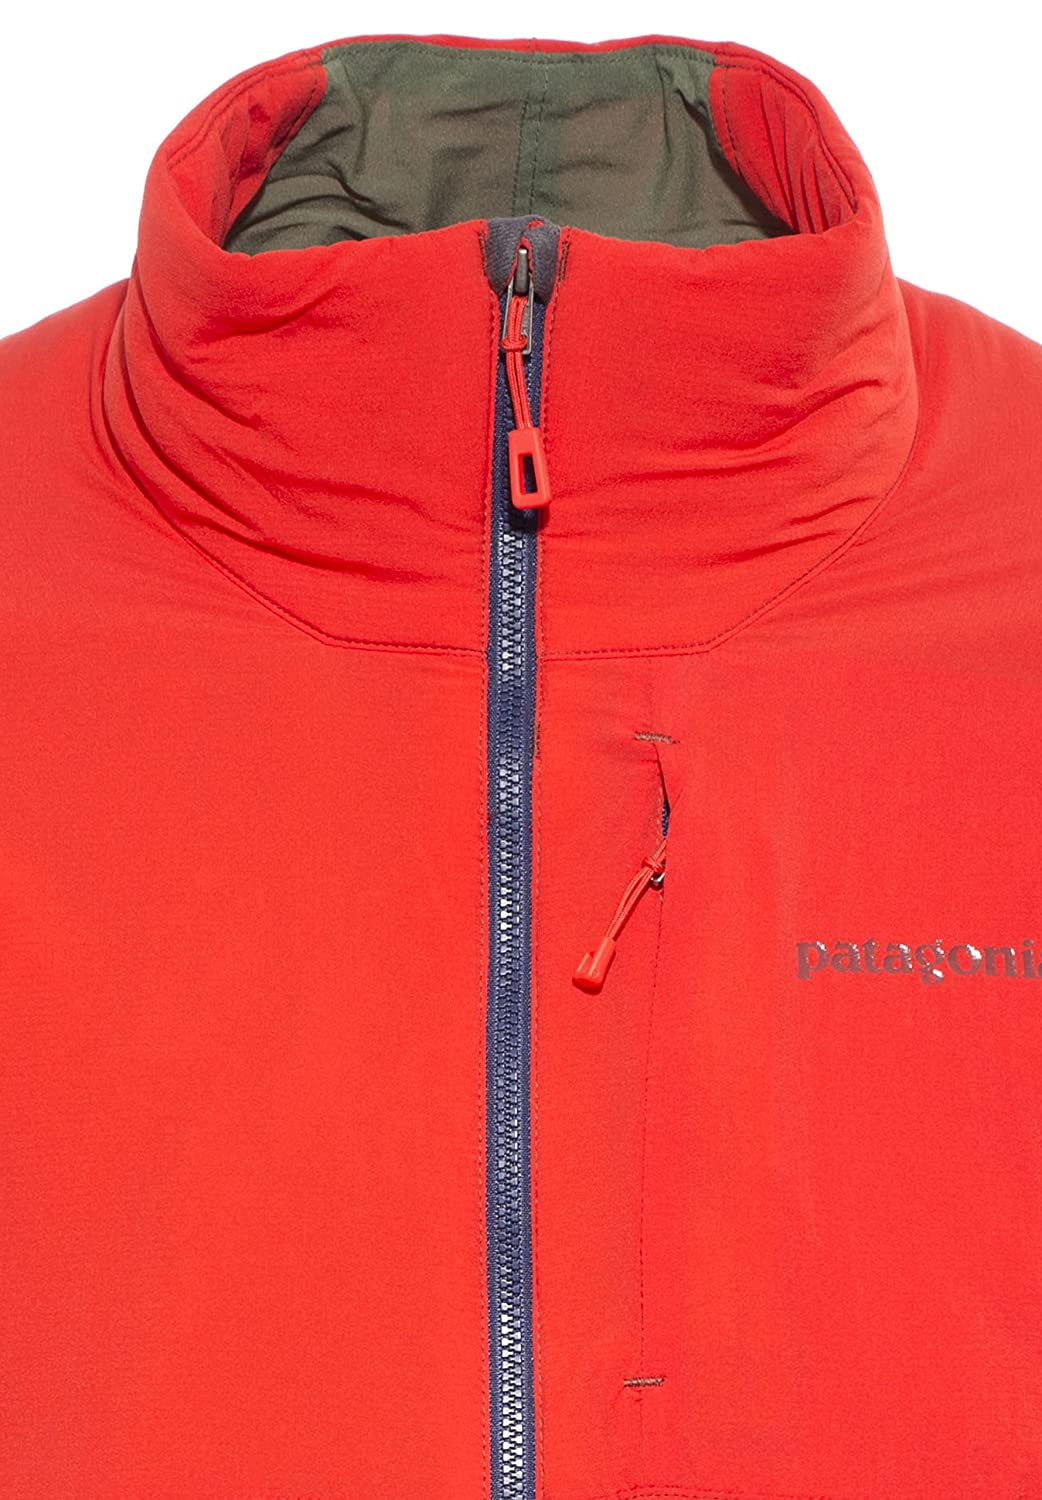 Patagonia M Nano-AIR Jacket - Turkish Red - - Wärmende leichte Herren FullRange? Isolationsjacke